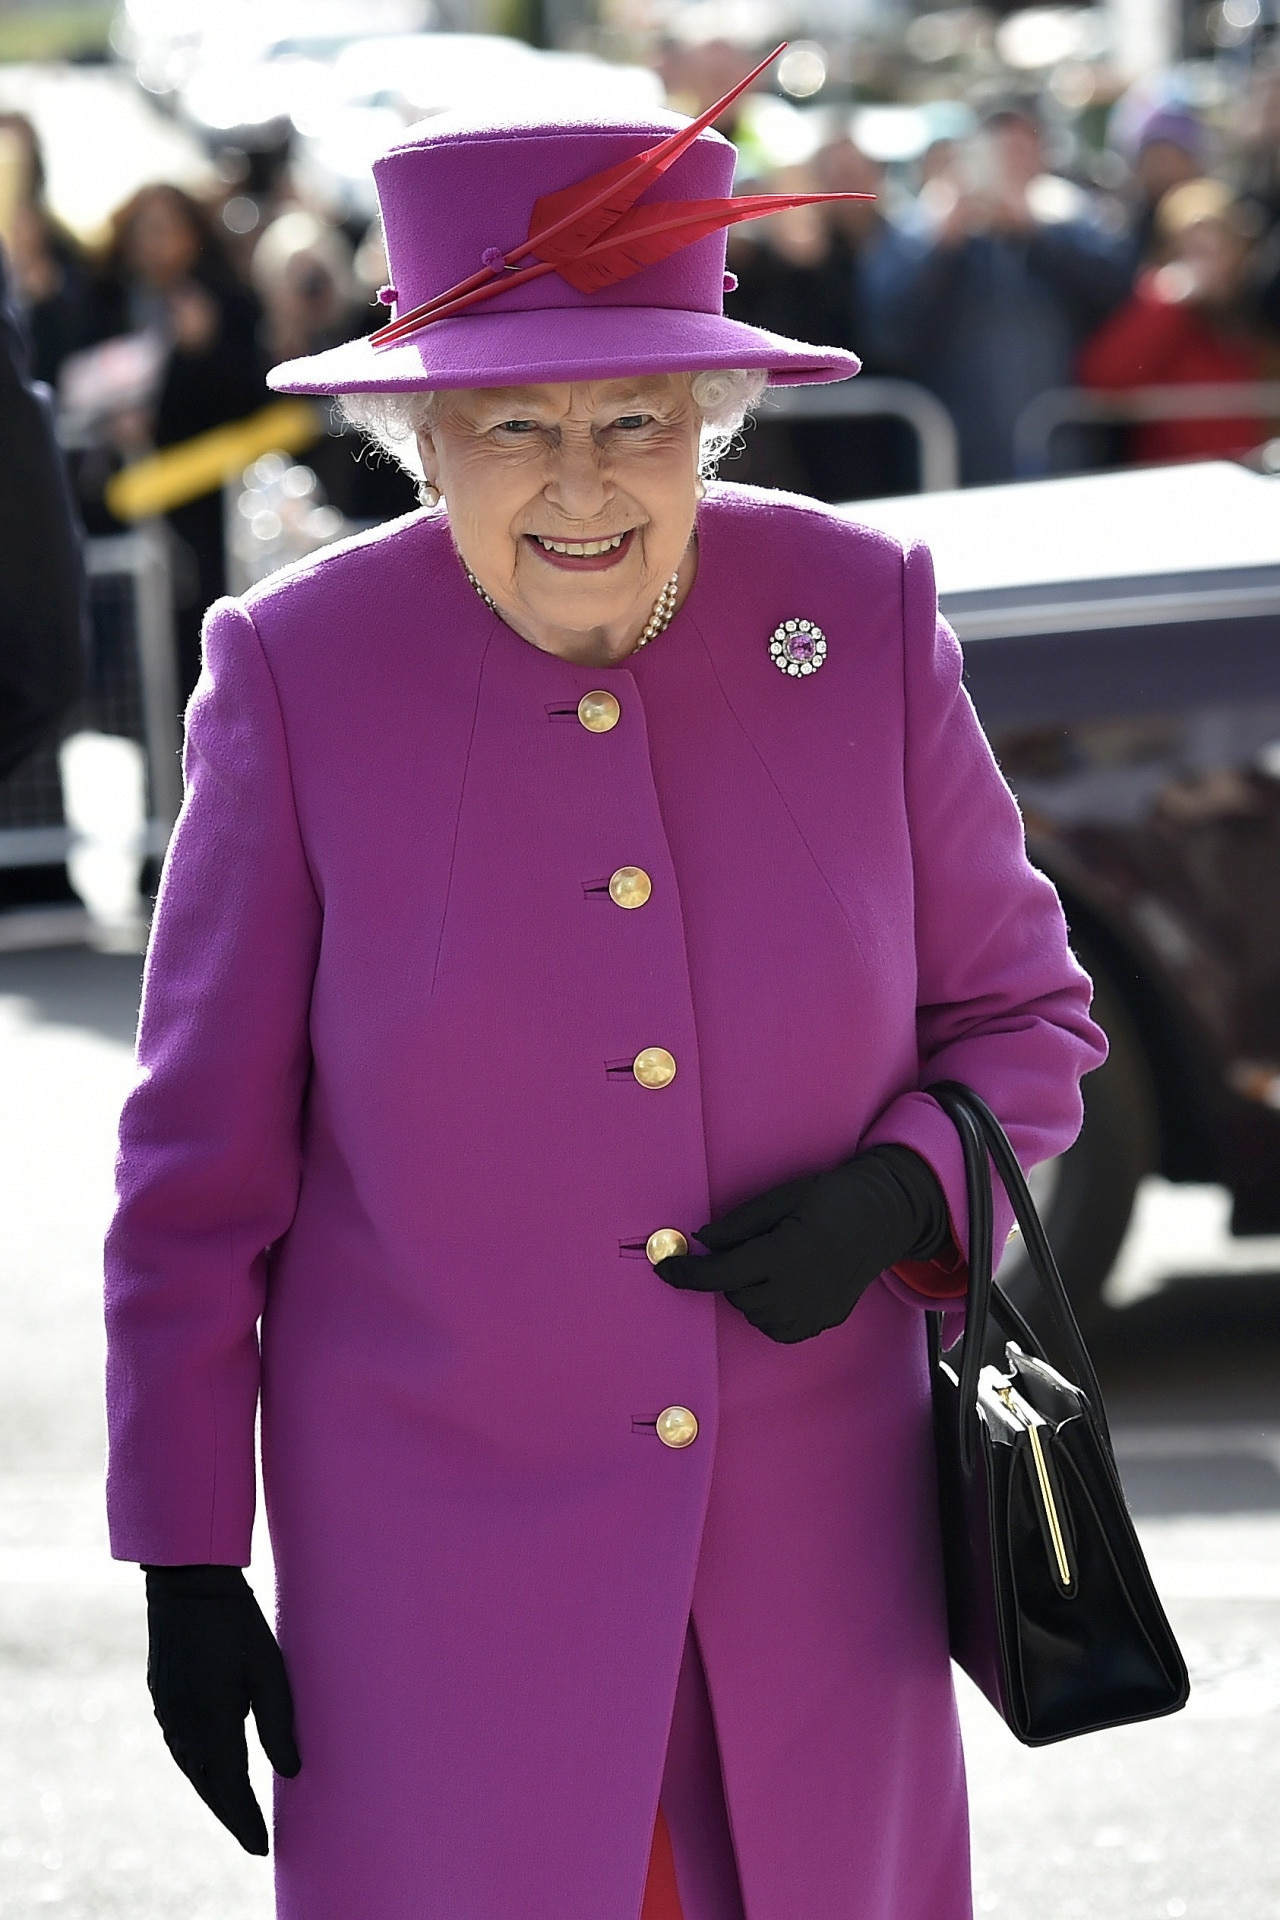 5 fascinating facts about The Queen's handbag habits